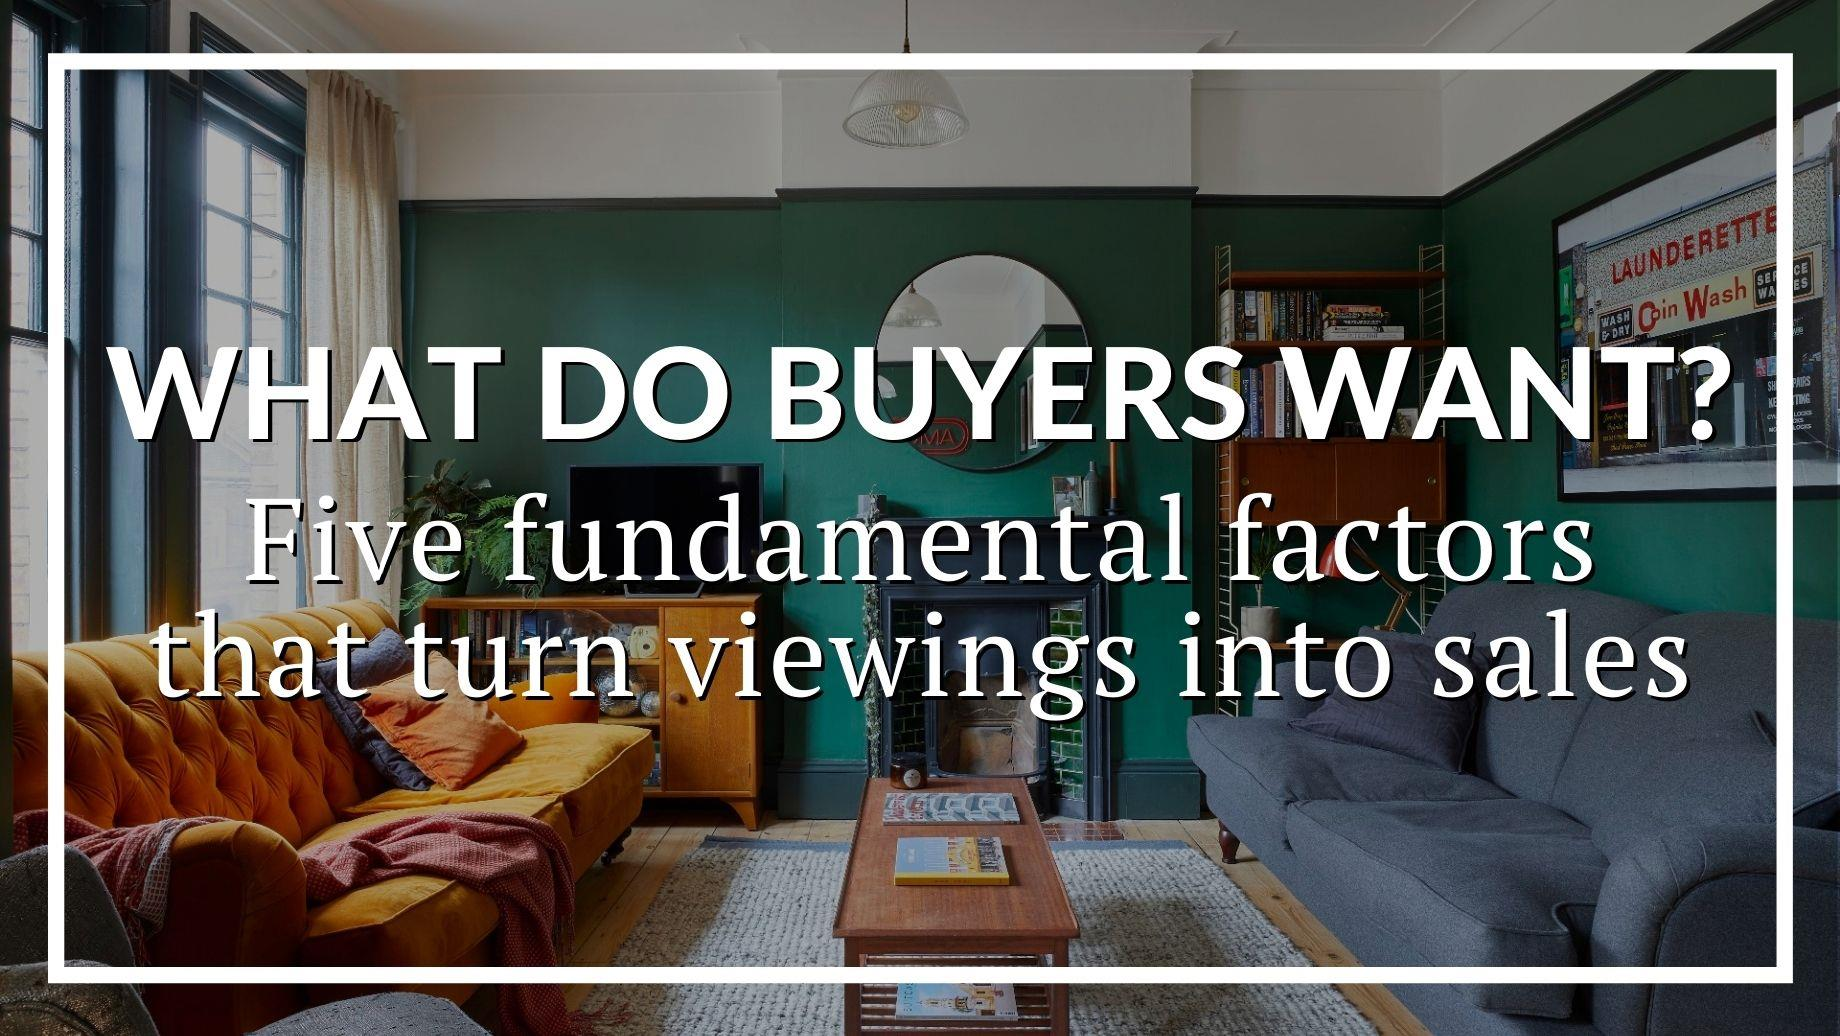 WHAT DO BUYERS WANT? FIVE FUNDAMENTAL FACTORS THAT TURN VIEWINGS INTO SALES